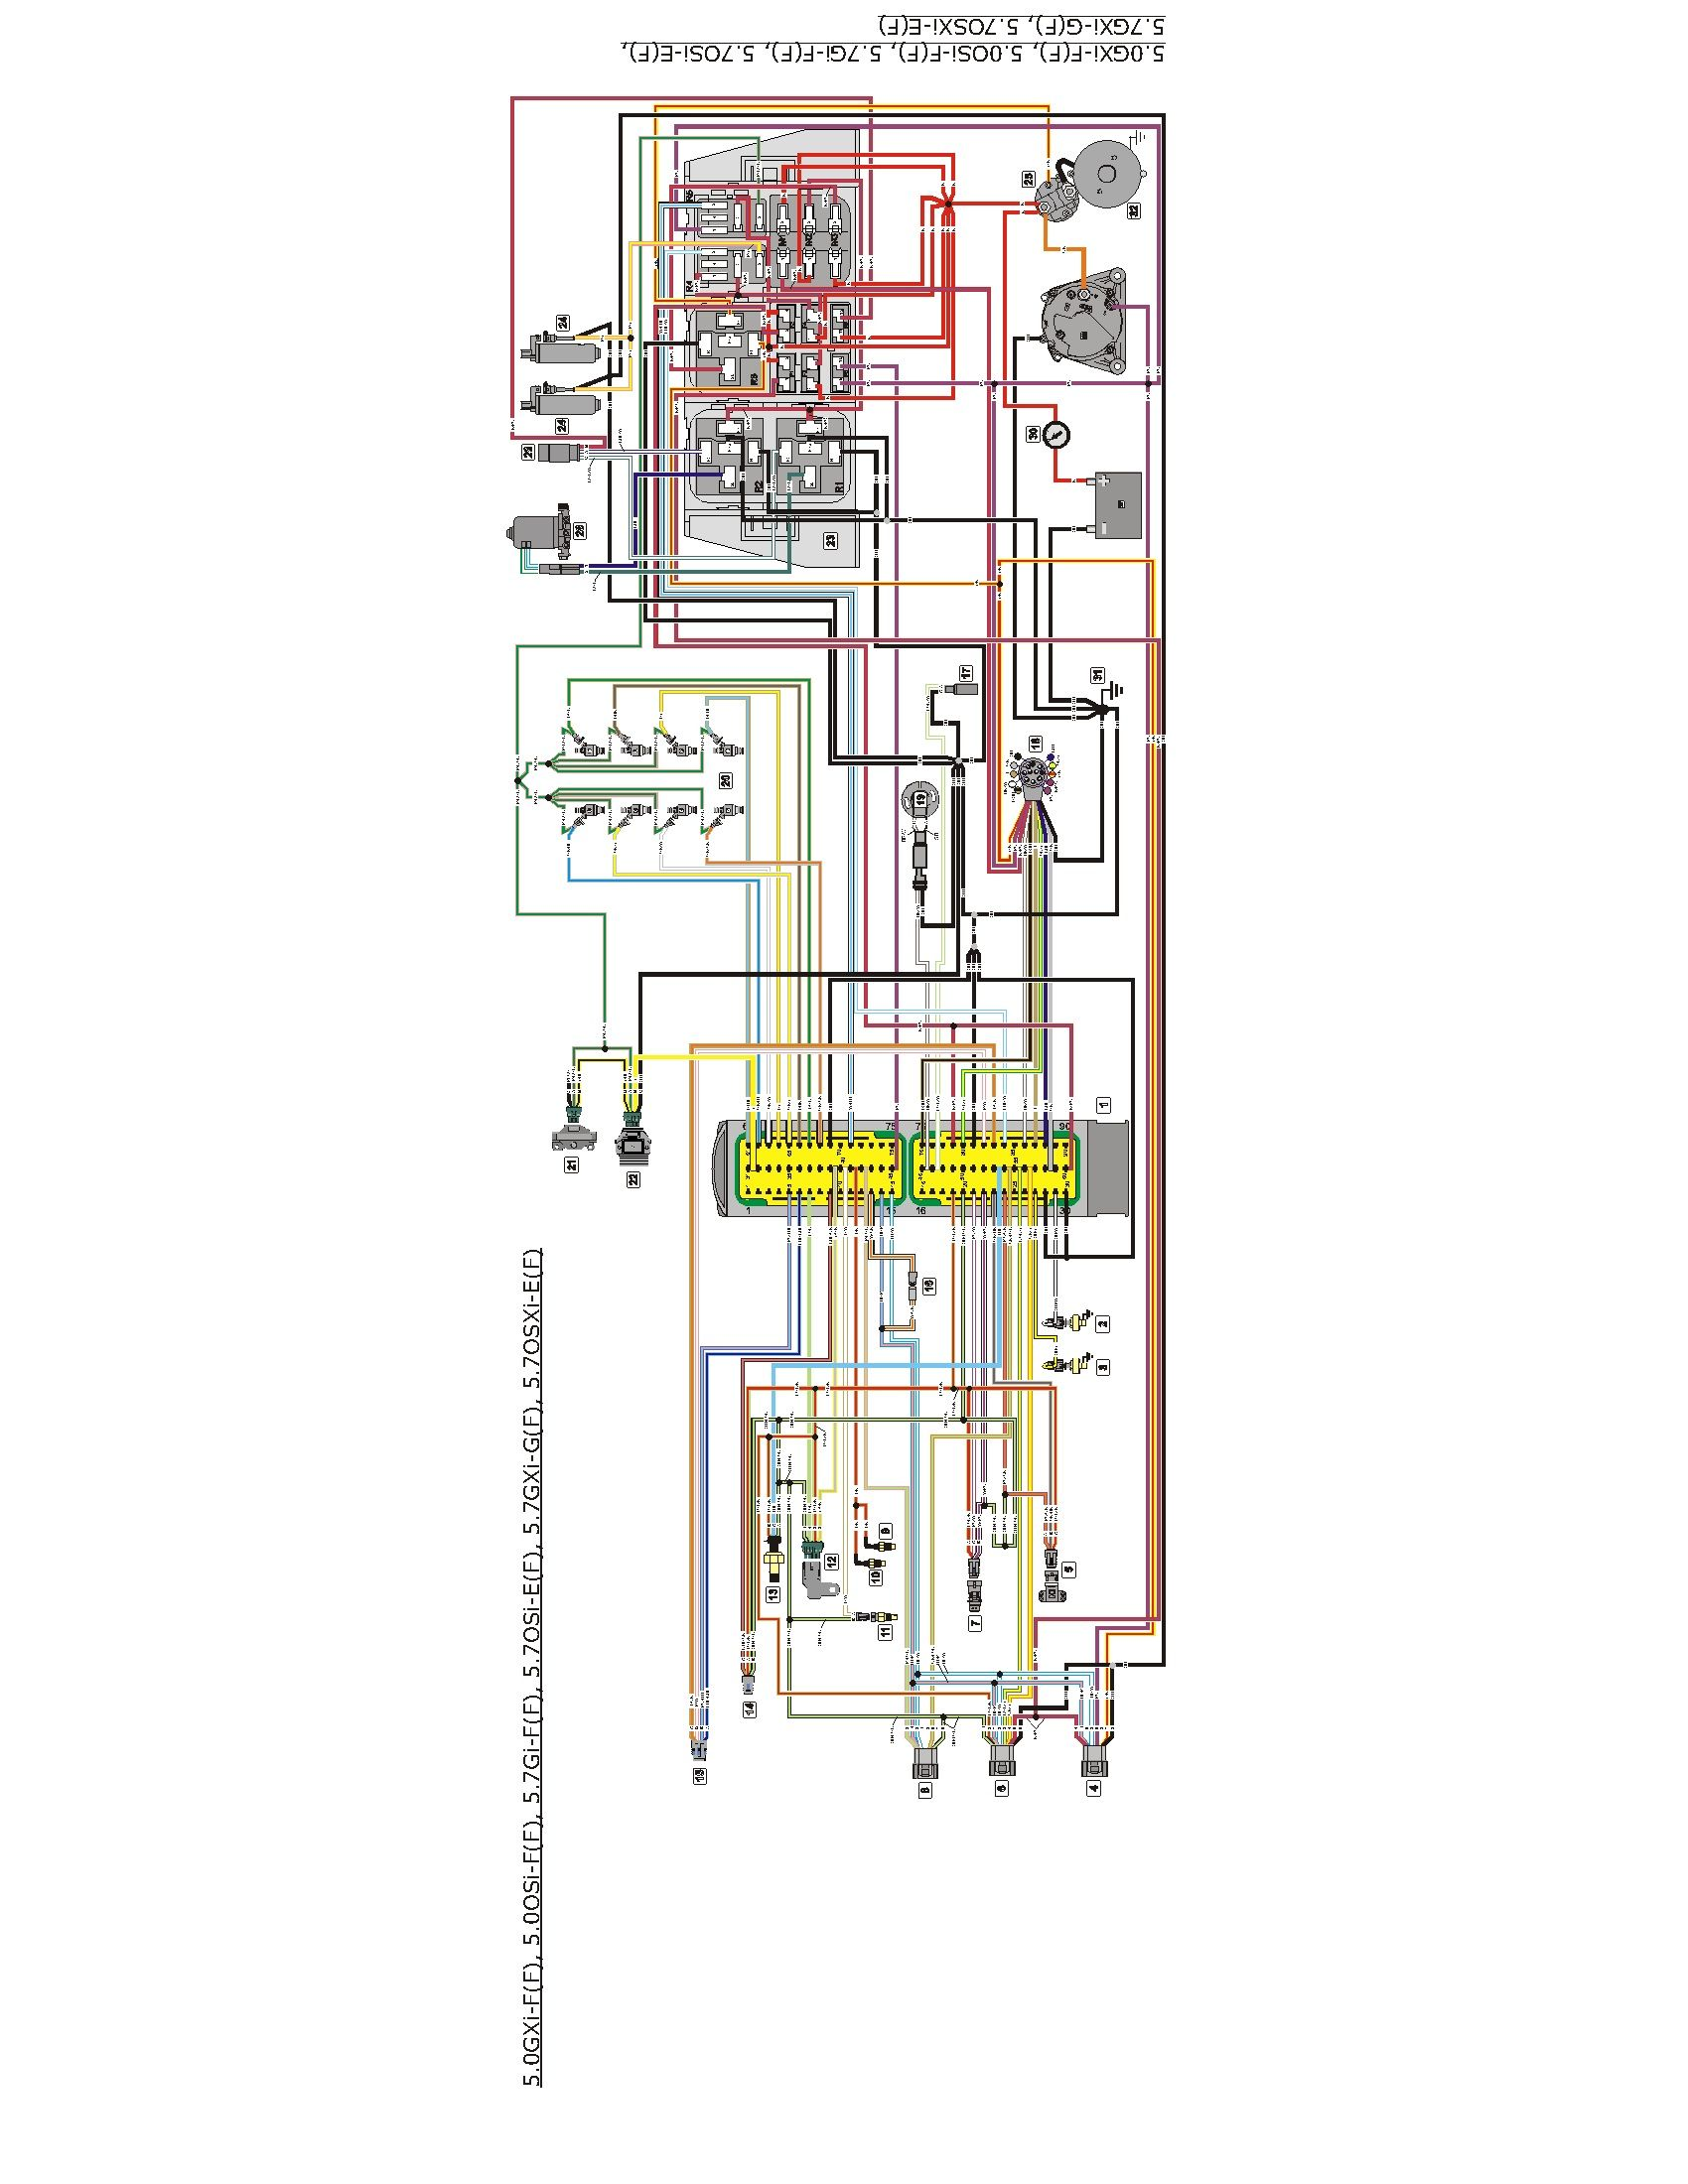 medium resolution of volvo penta 5 7 engine wiring diagram boat pinterest volvo rh pinterest com volvo d12 engine